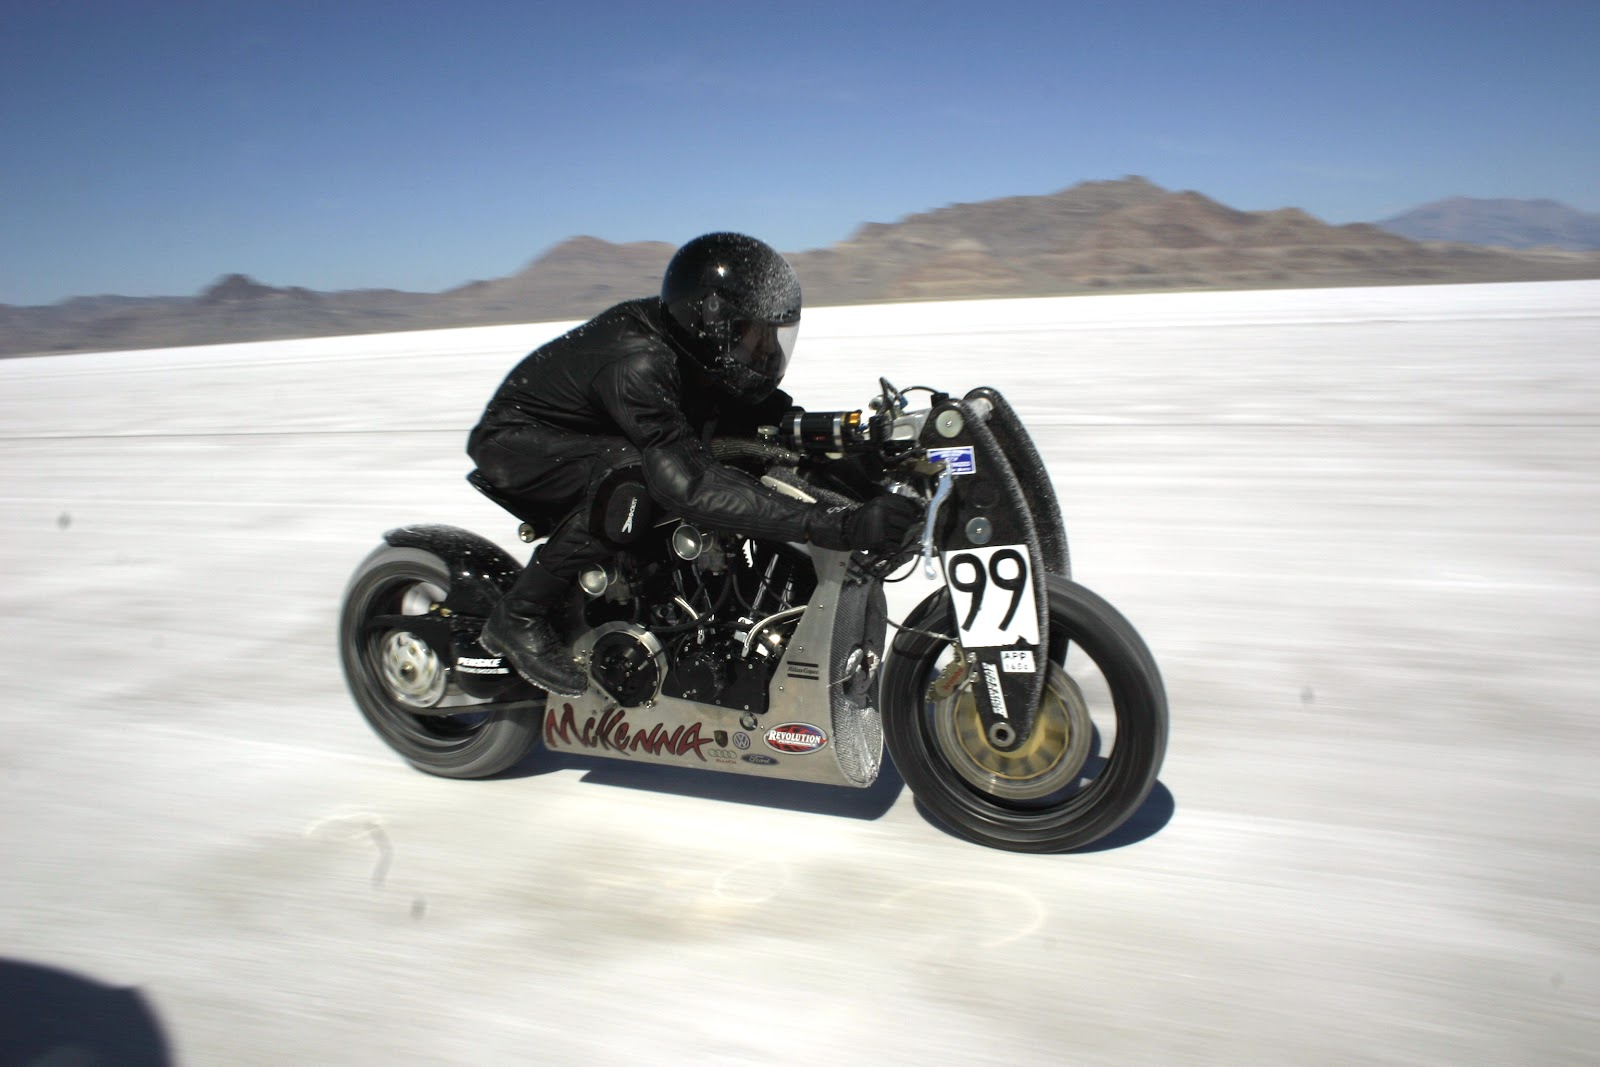 Chris Roberts riding the Wraith XP-1 at Bonneville